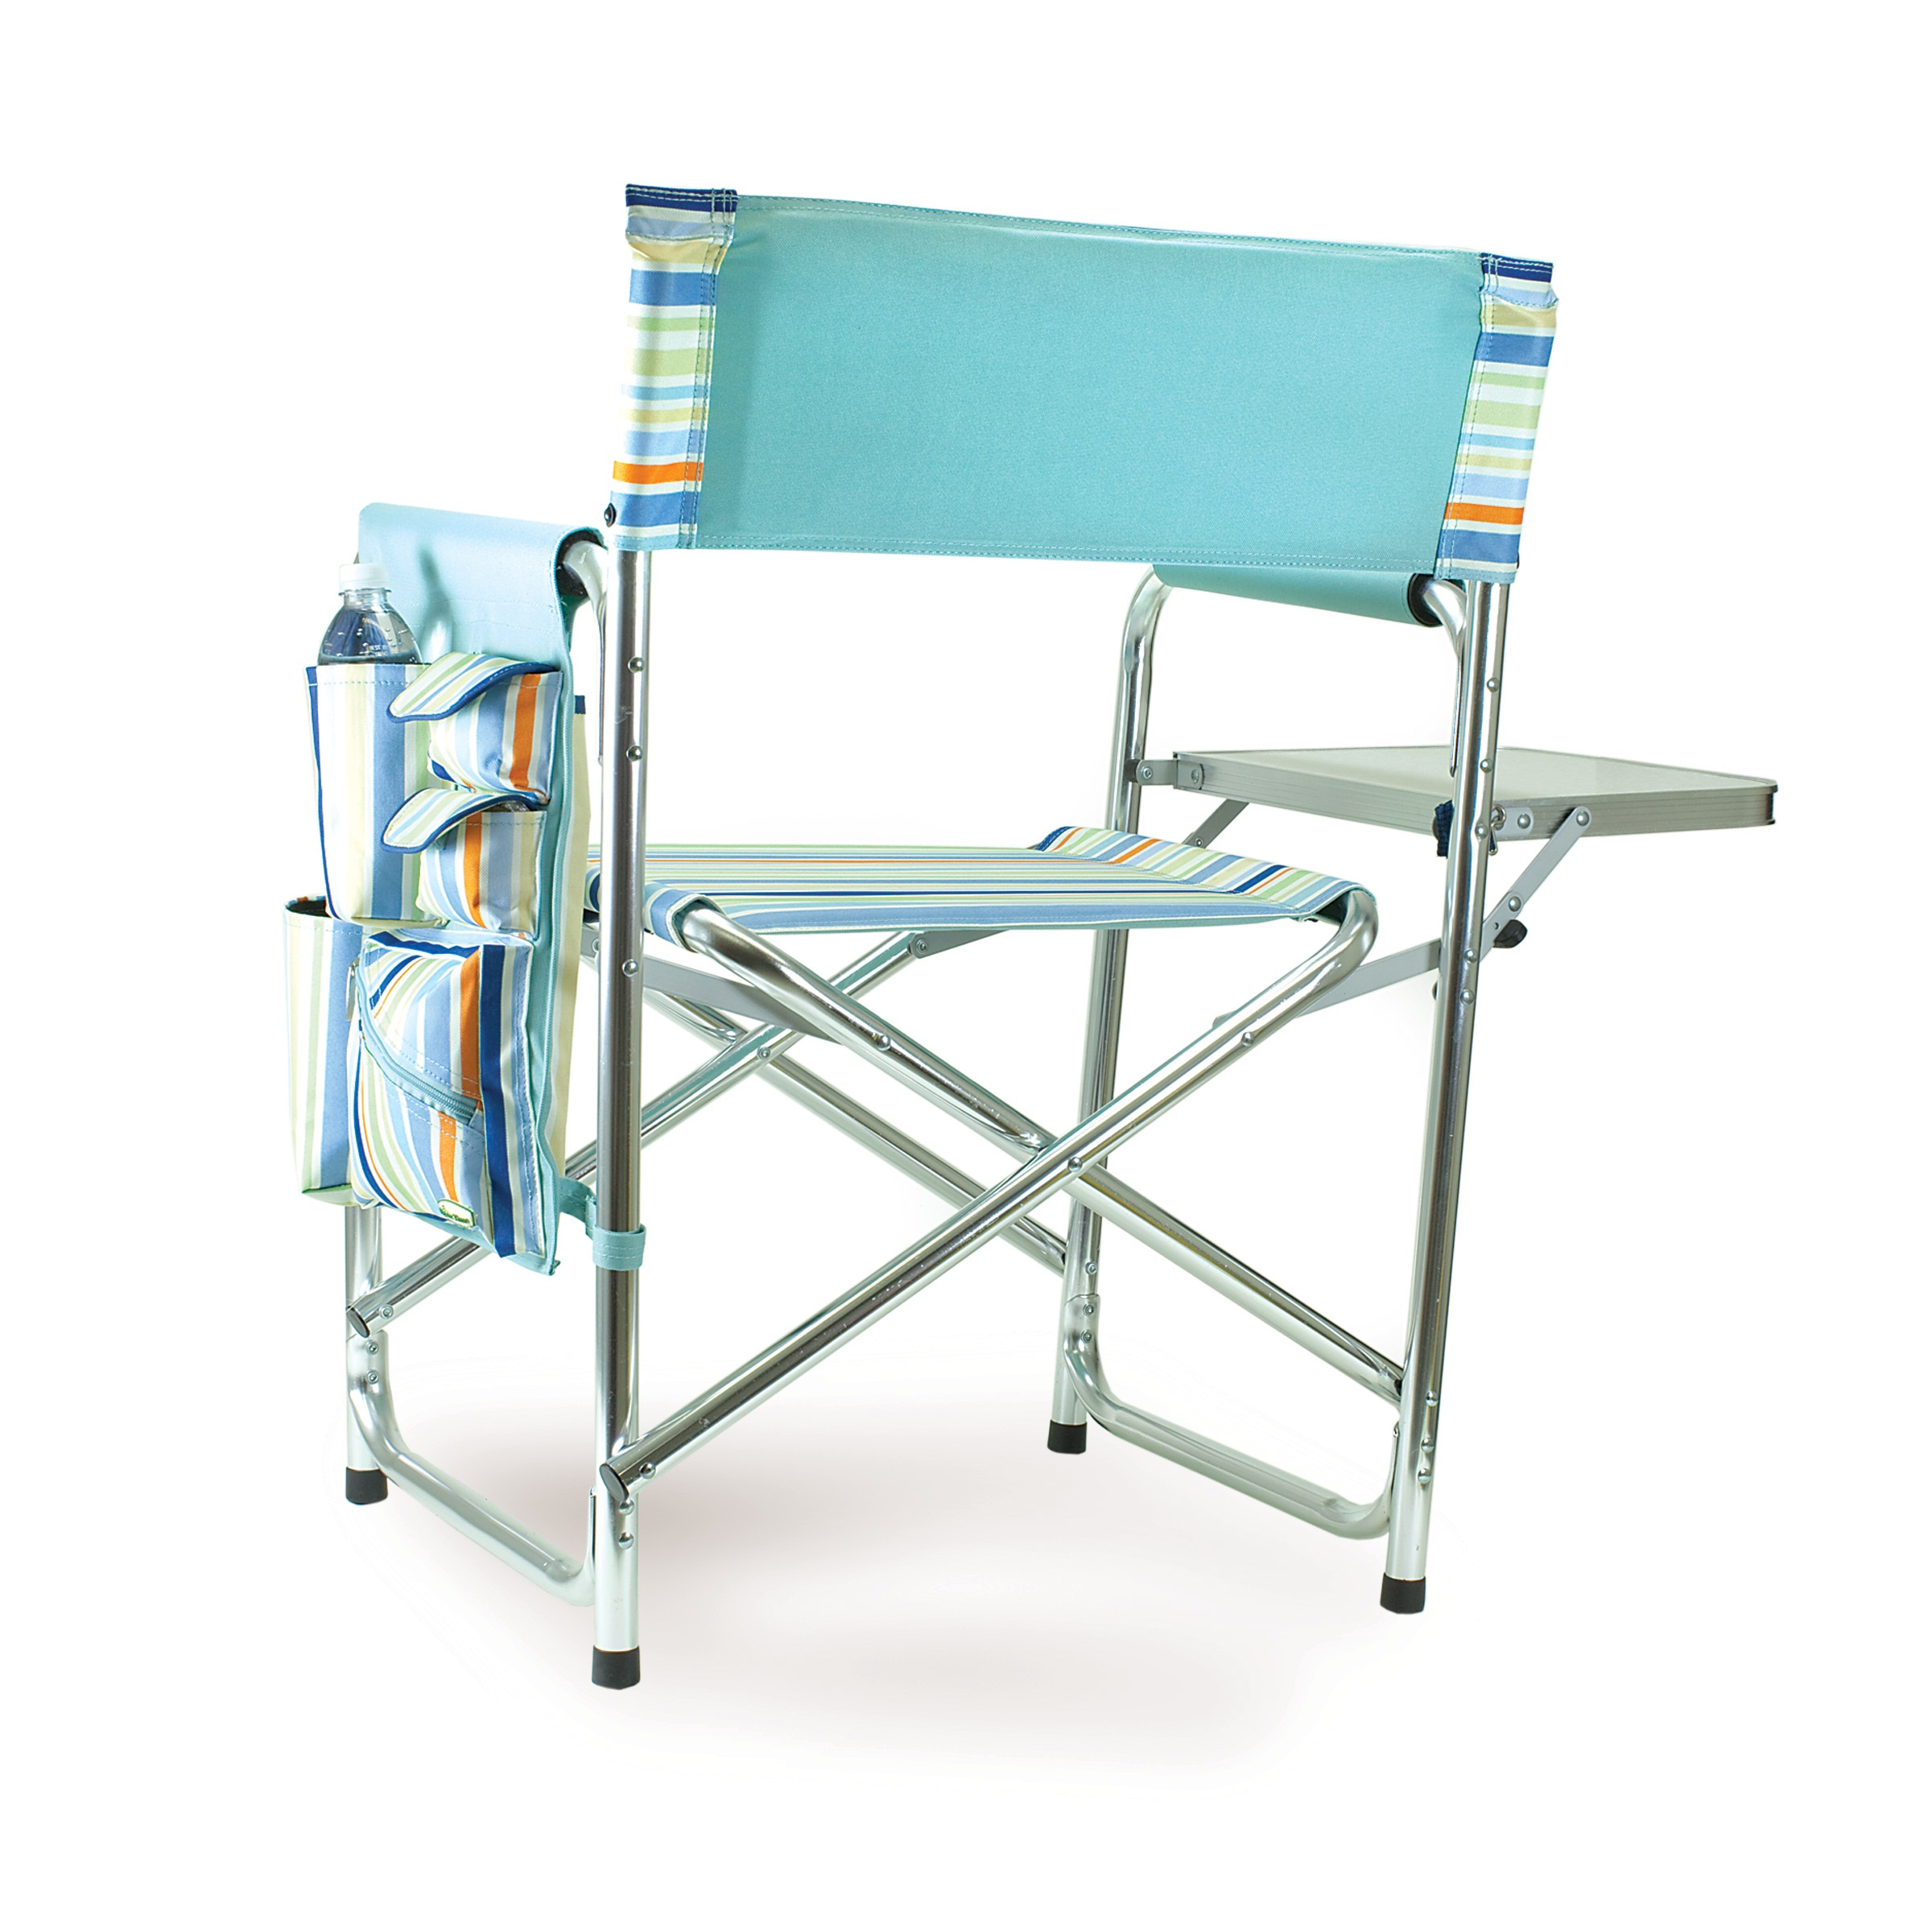 Picnic Chair Picnic Time St Tropez Portable Folding Sports Camping Chair